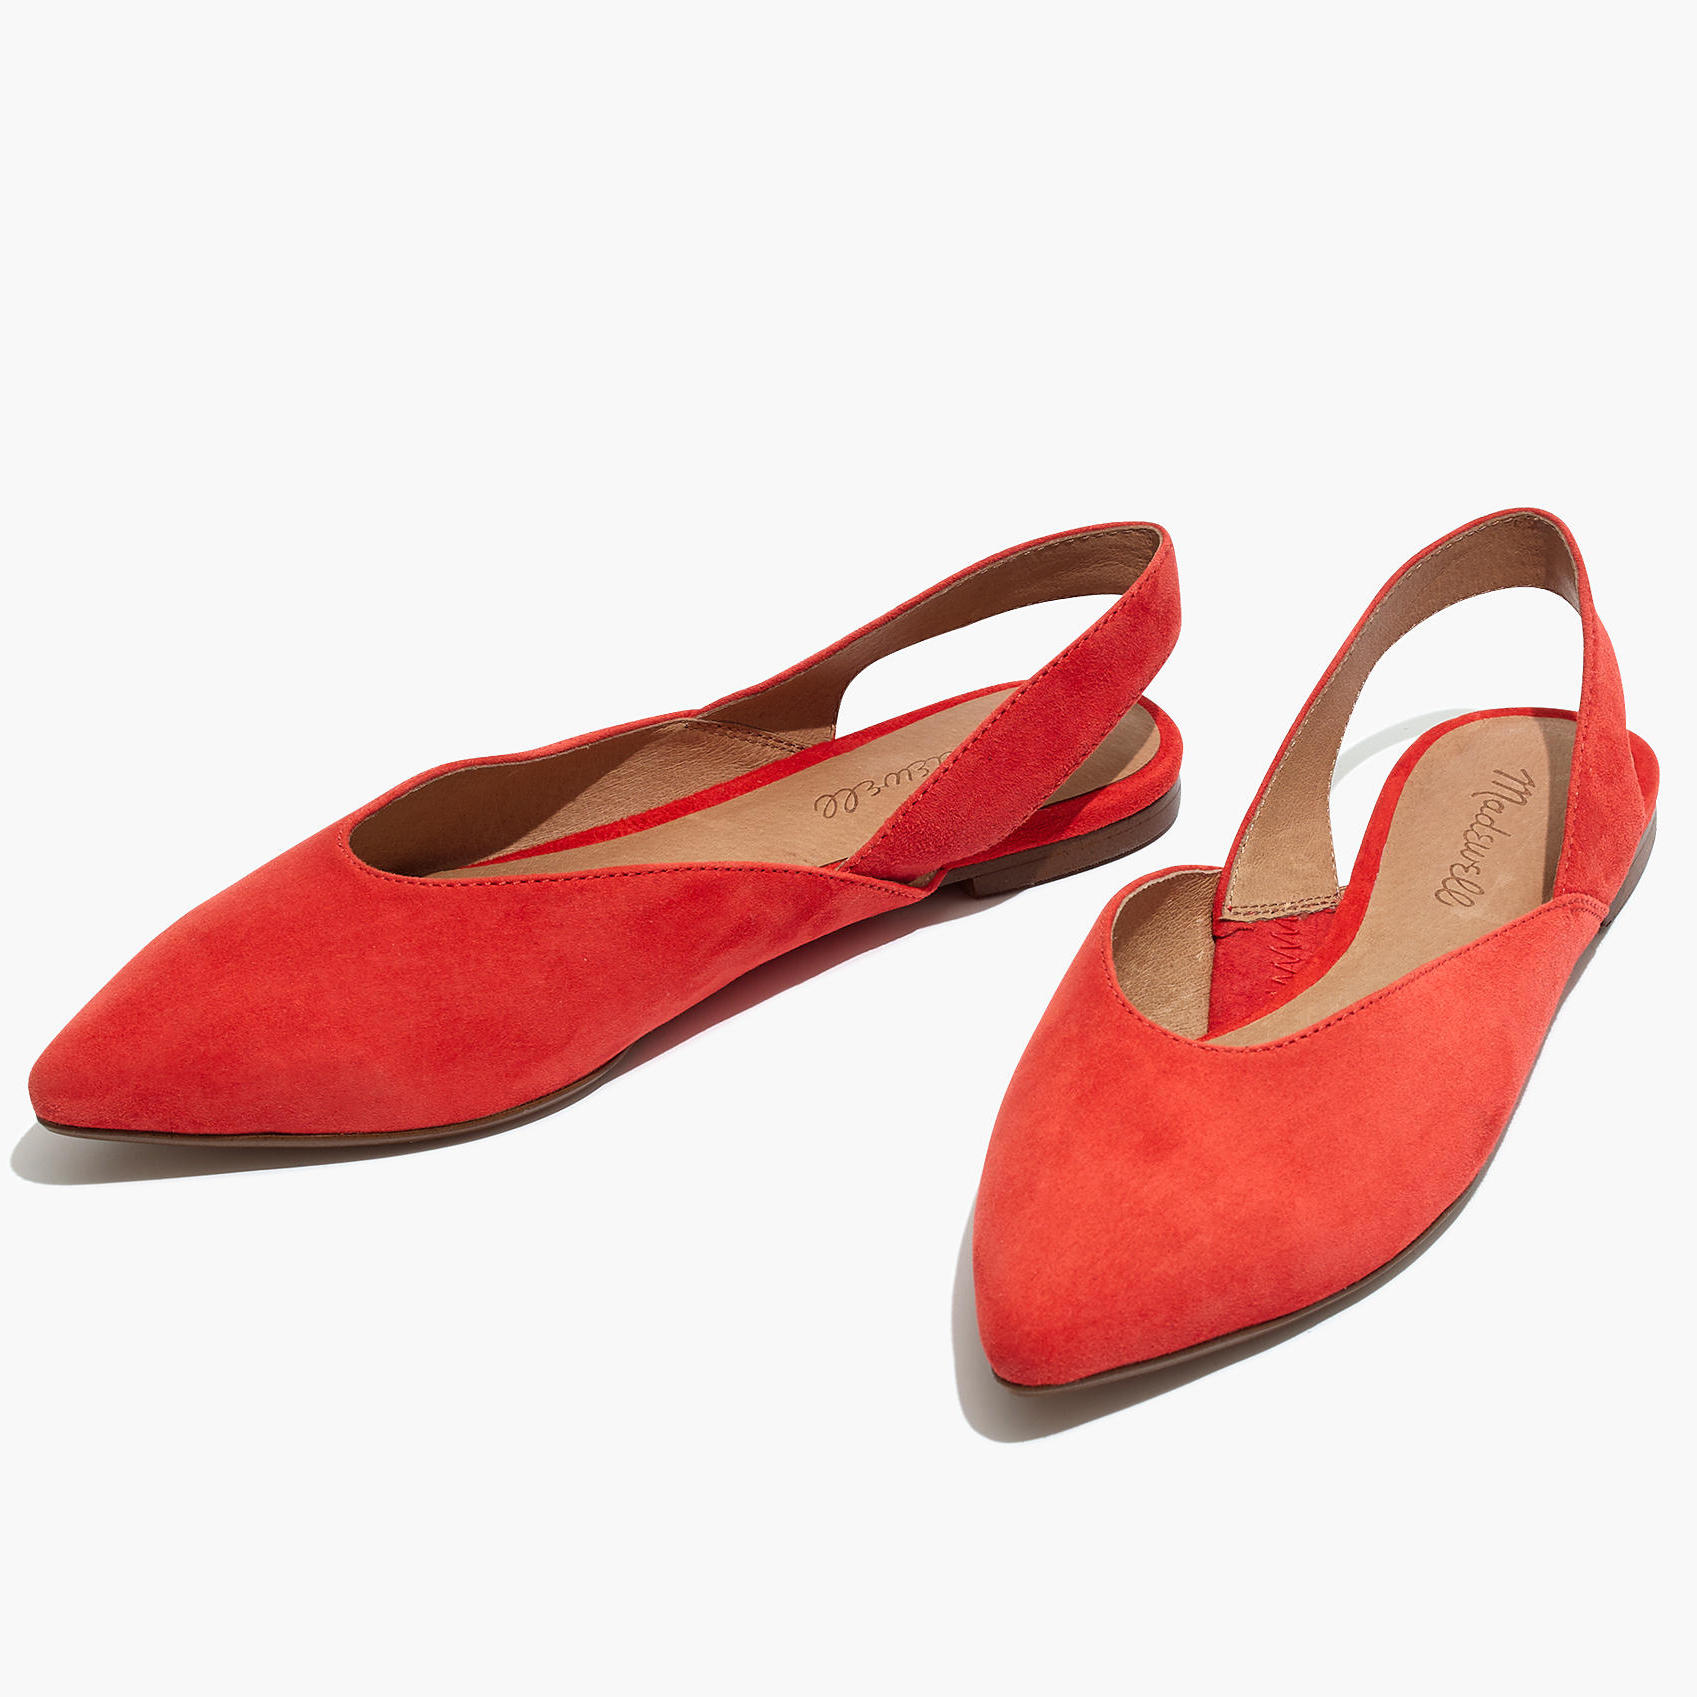 Adorable red ballet flats for spring